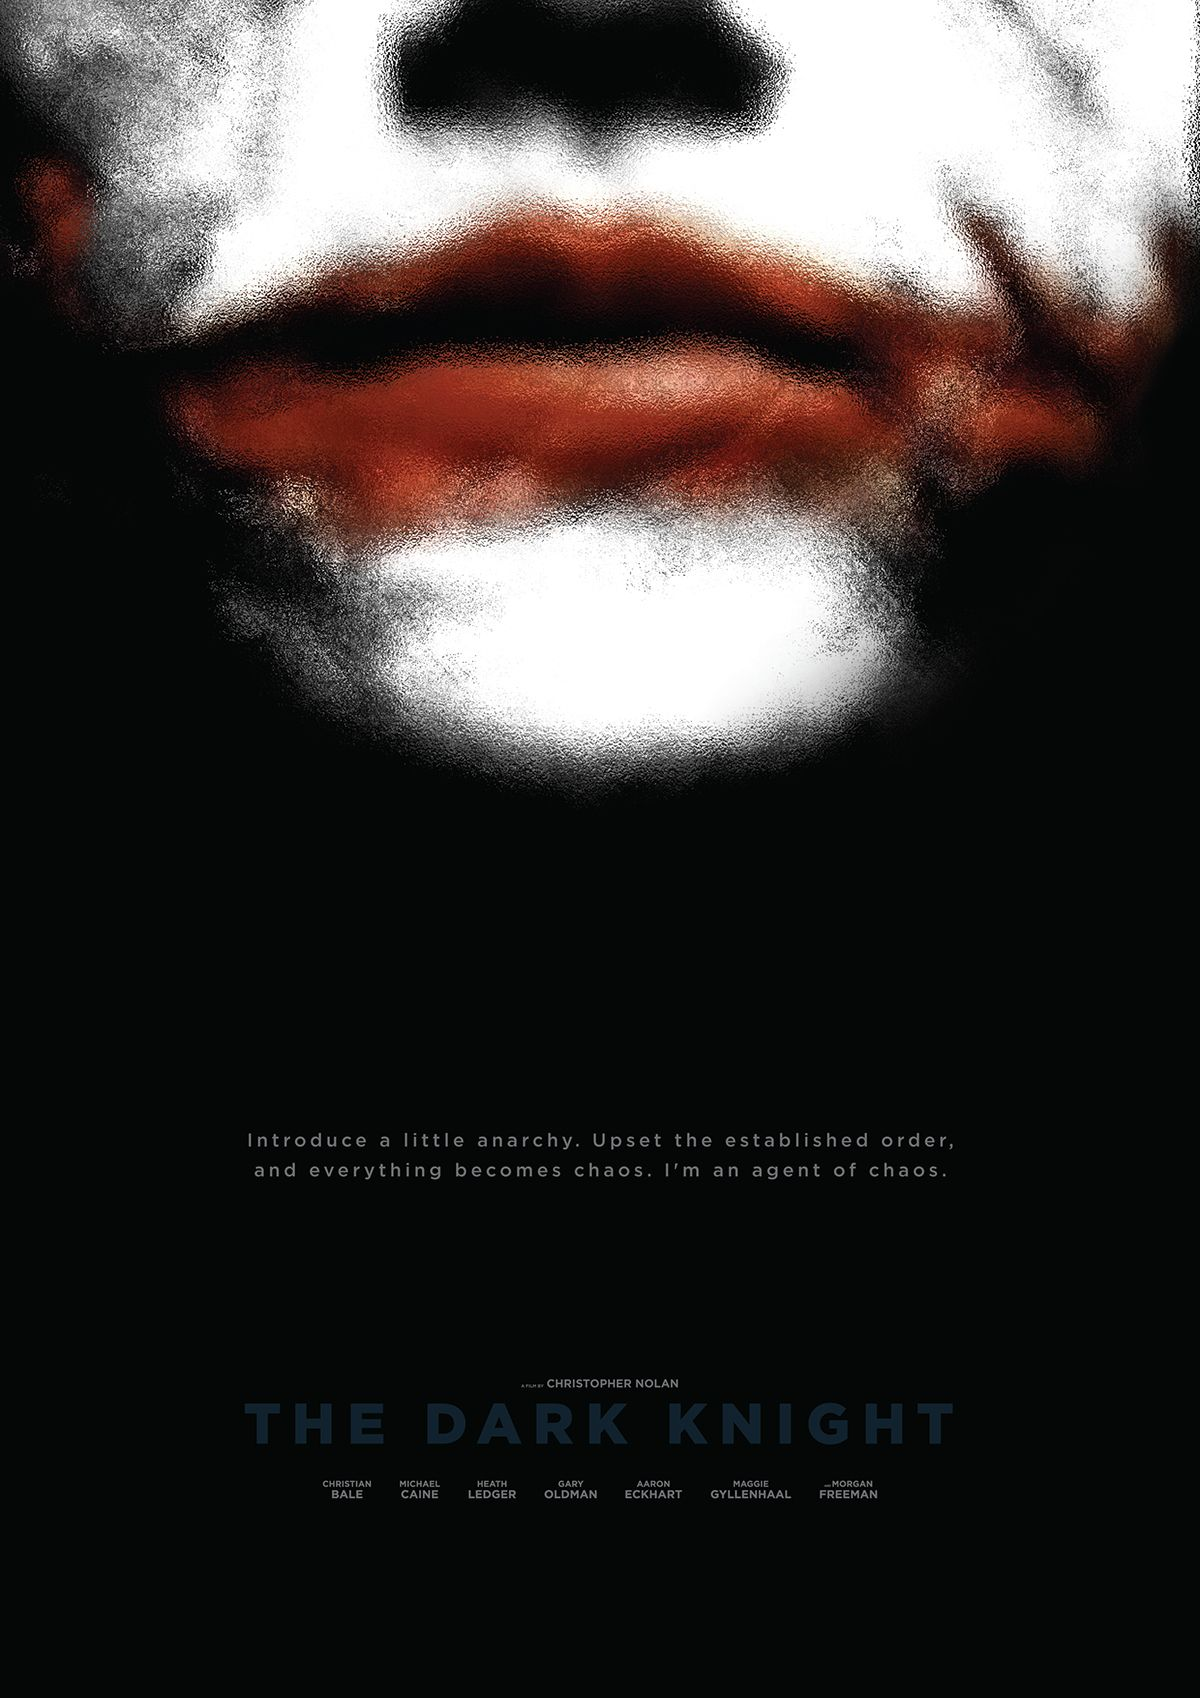 Pin On 61 Christopher Nolan 1970 Movie Posters